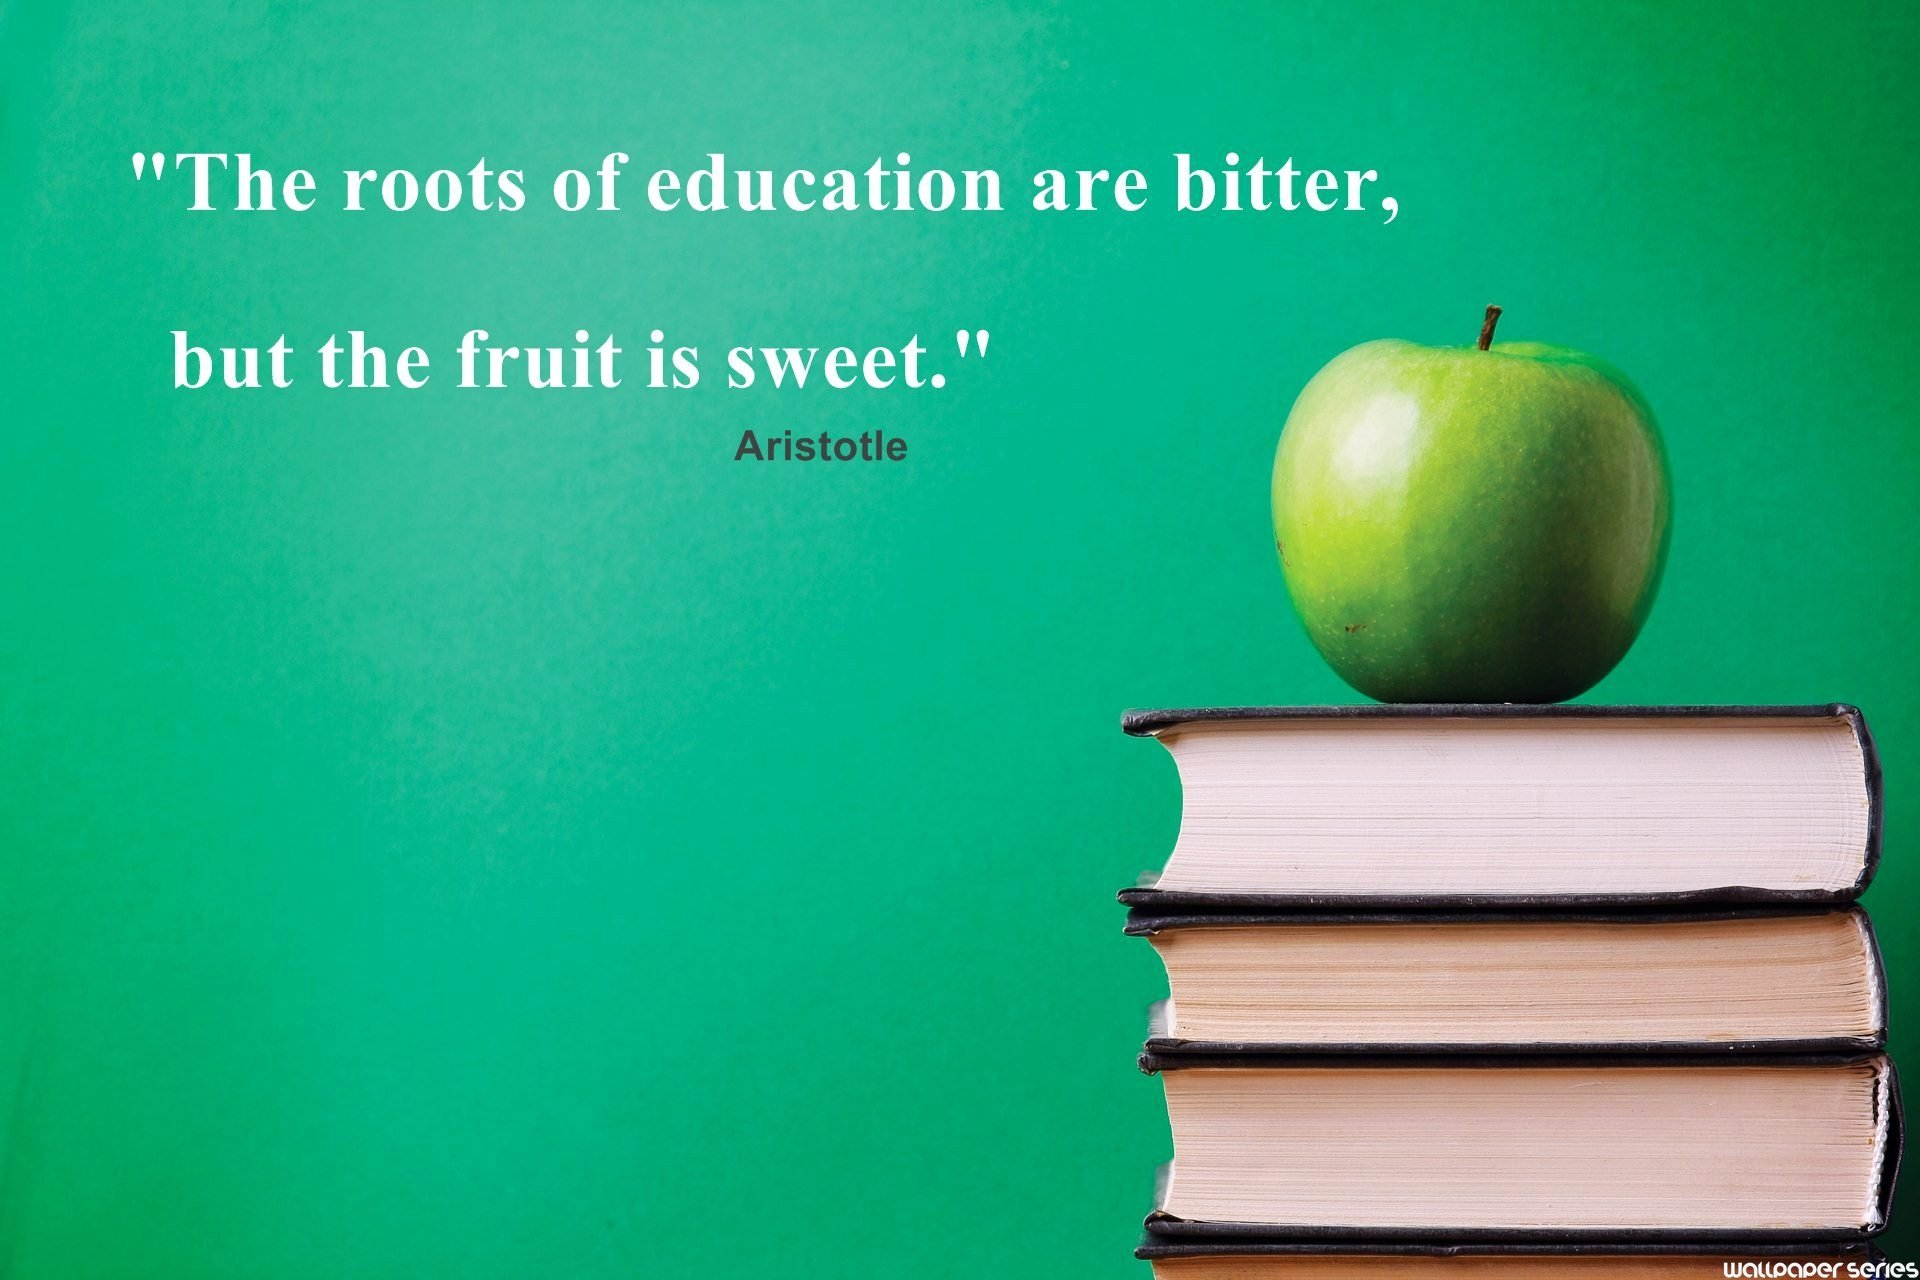 1875257220-Aristotle_20-_20Education_20Quotes_20Wallpaper.jpg